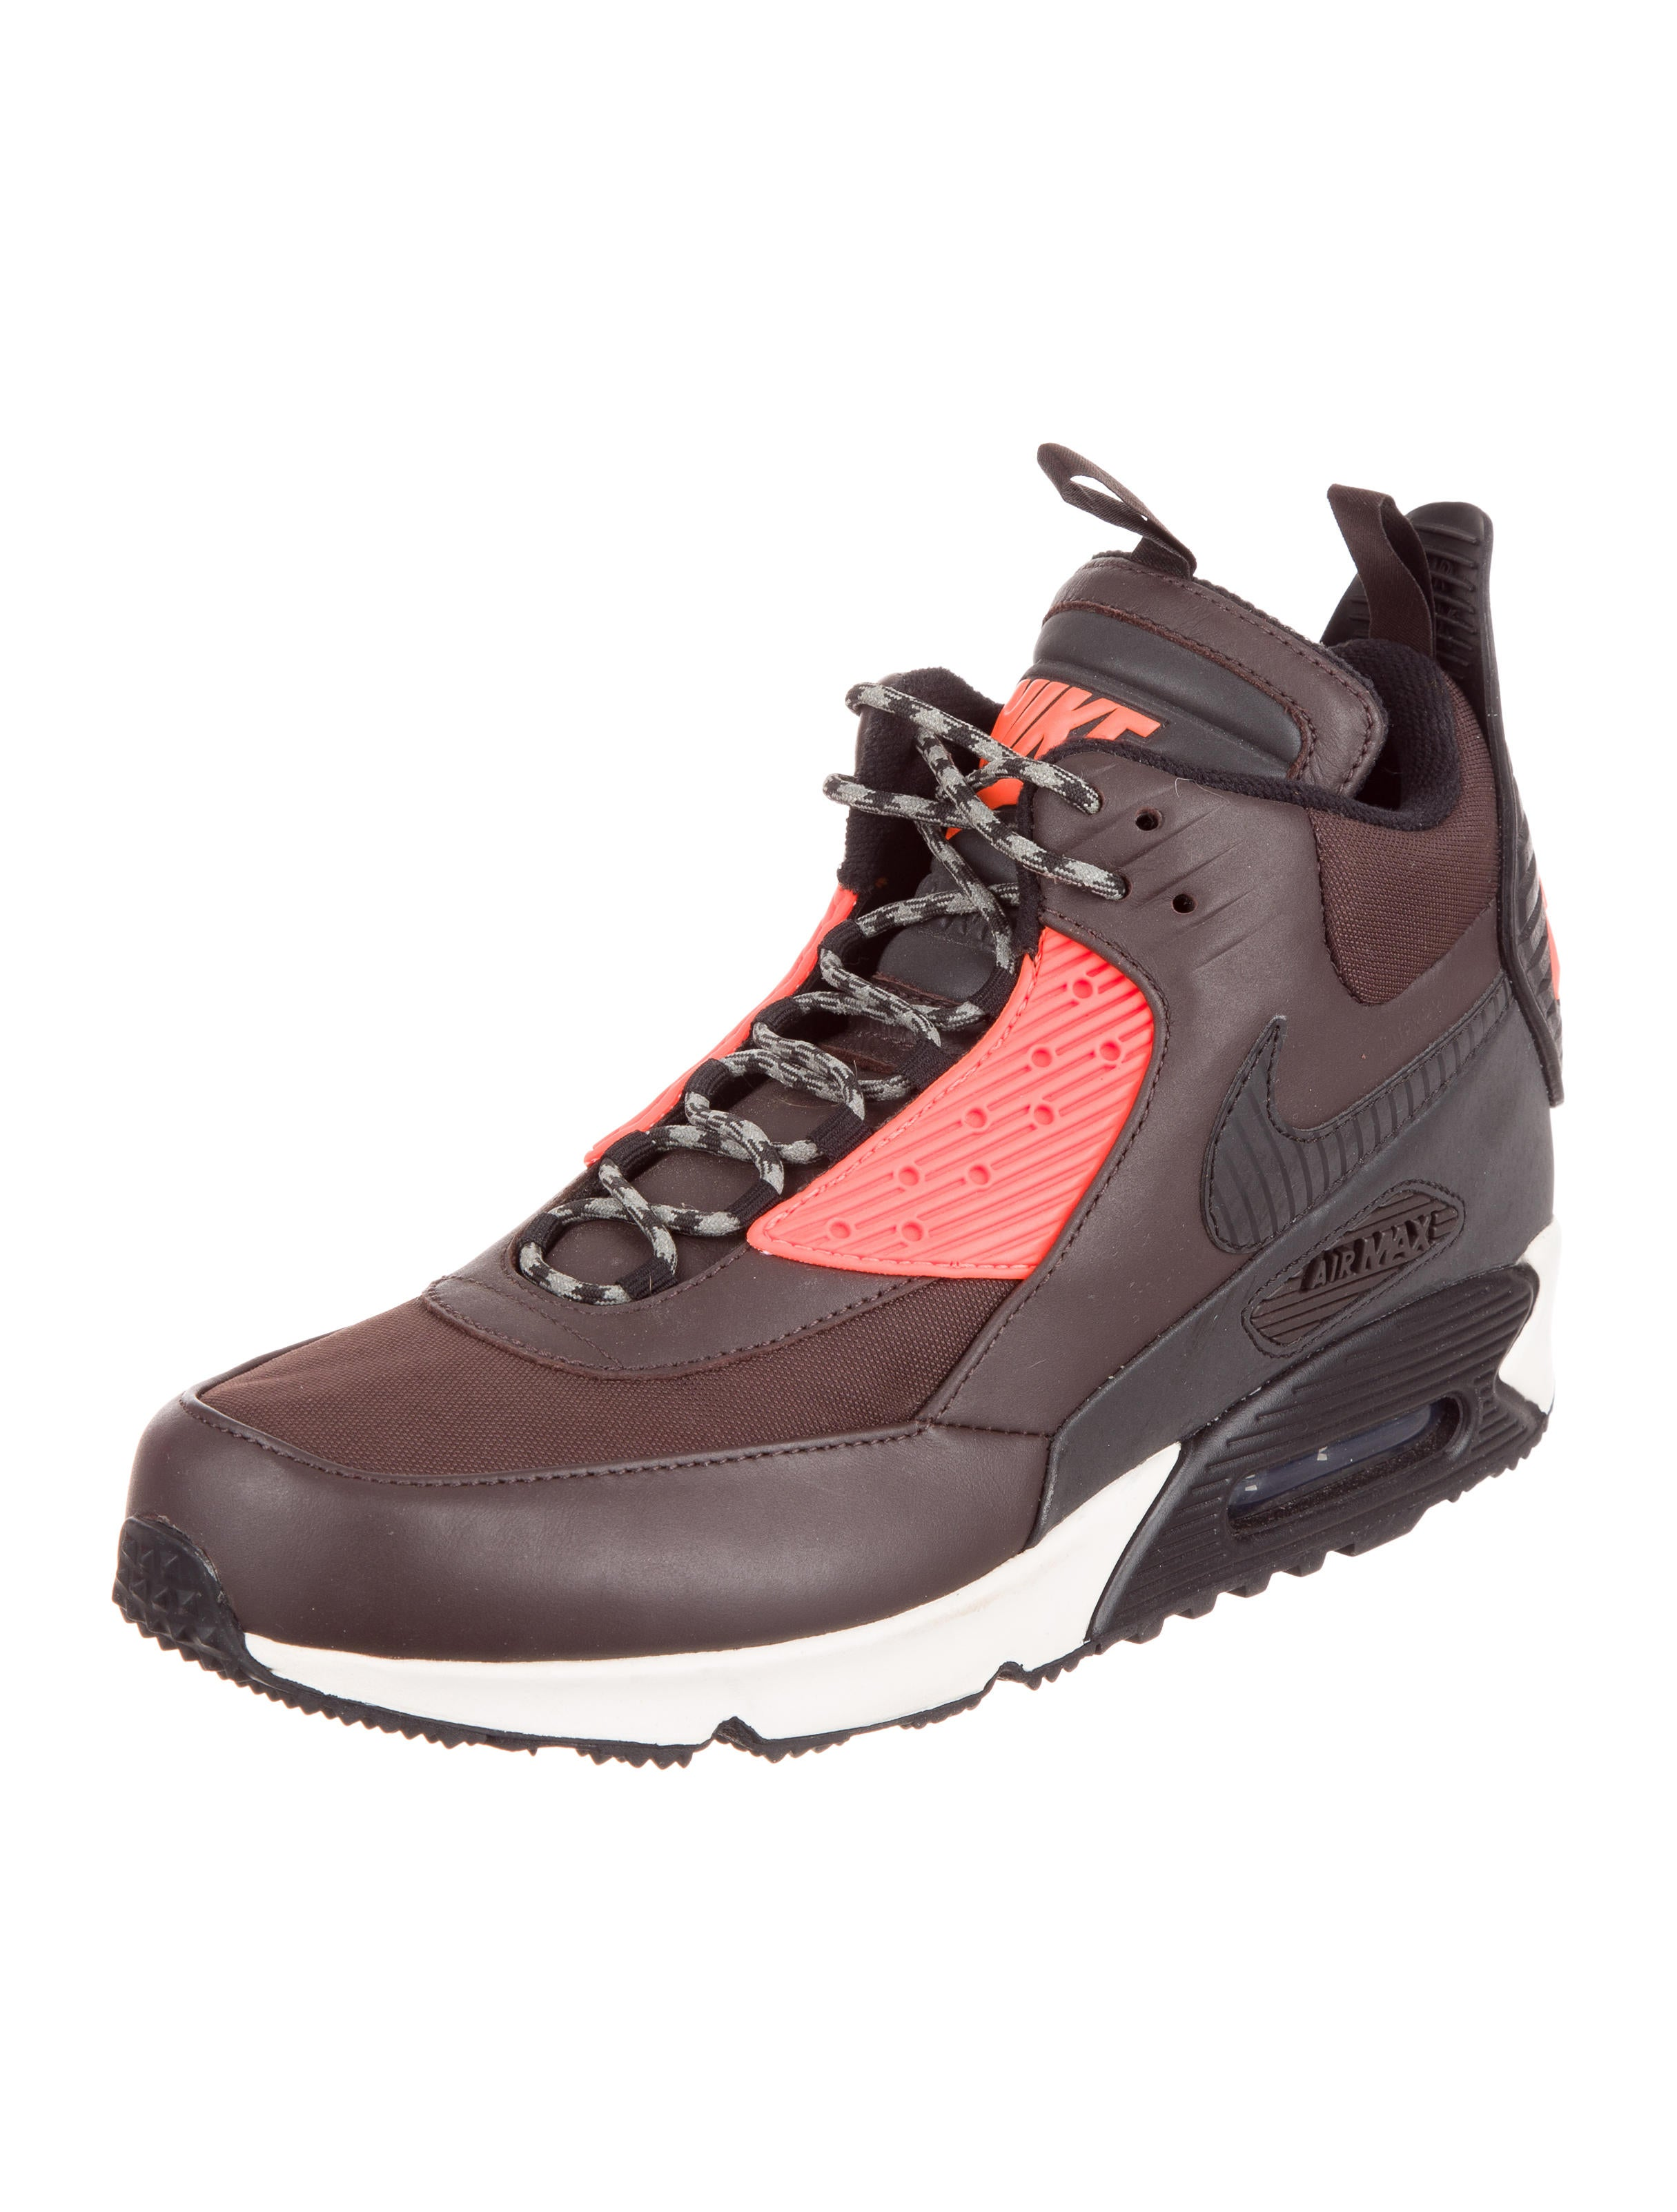 Vigo Stainless Steel Pull Out Kitchen Faucet Air Max 90 Sneaker Boots 28 Images Nike Air Max 90